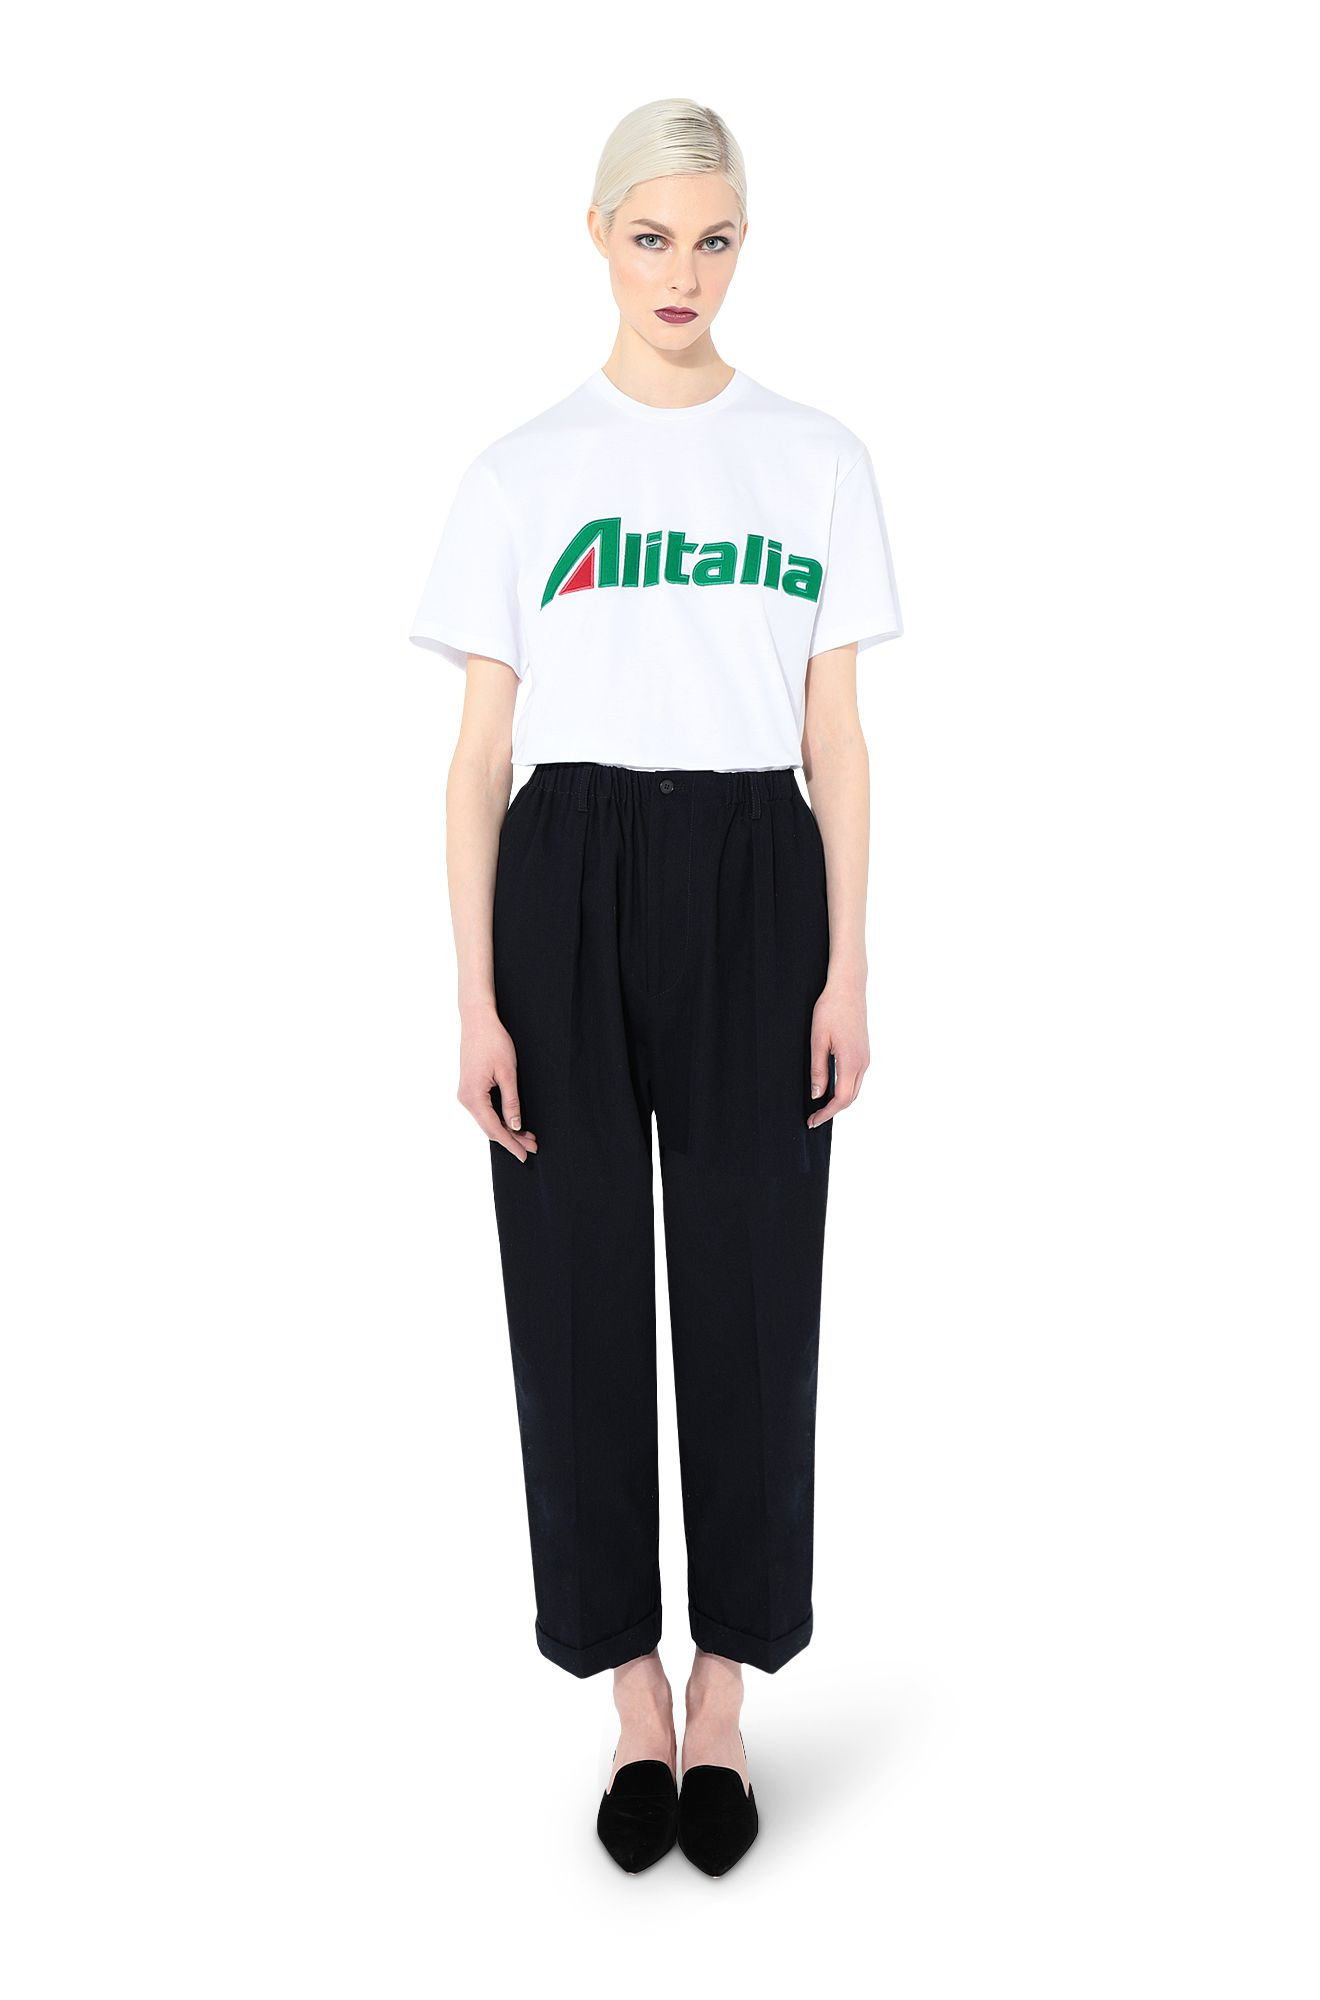 T-shirt embroidered with Alitalia logo